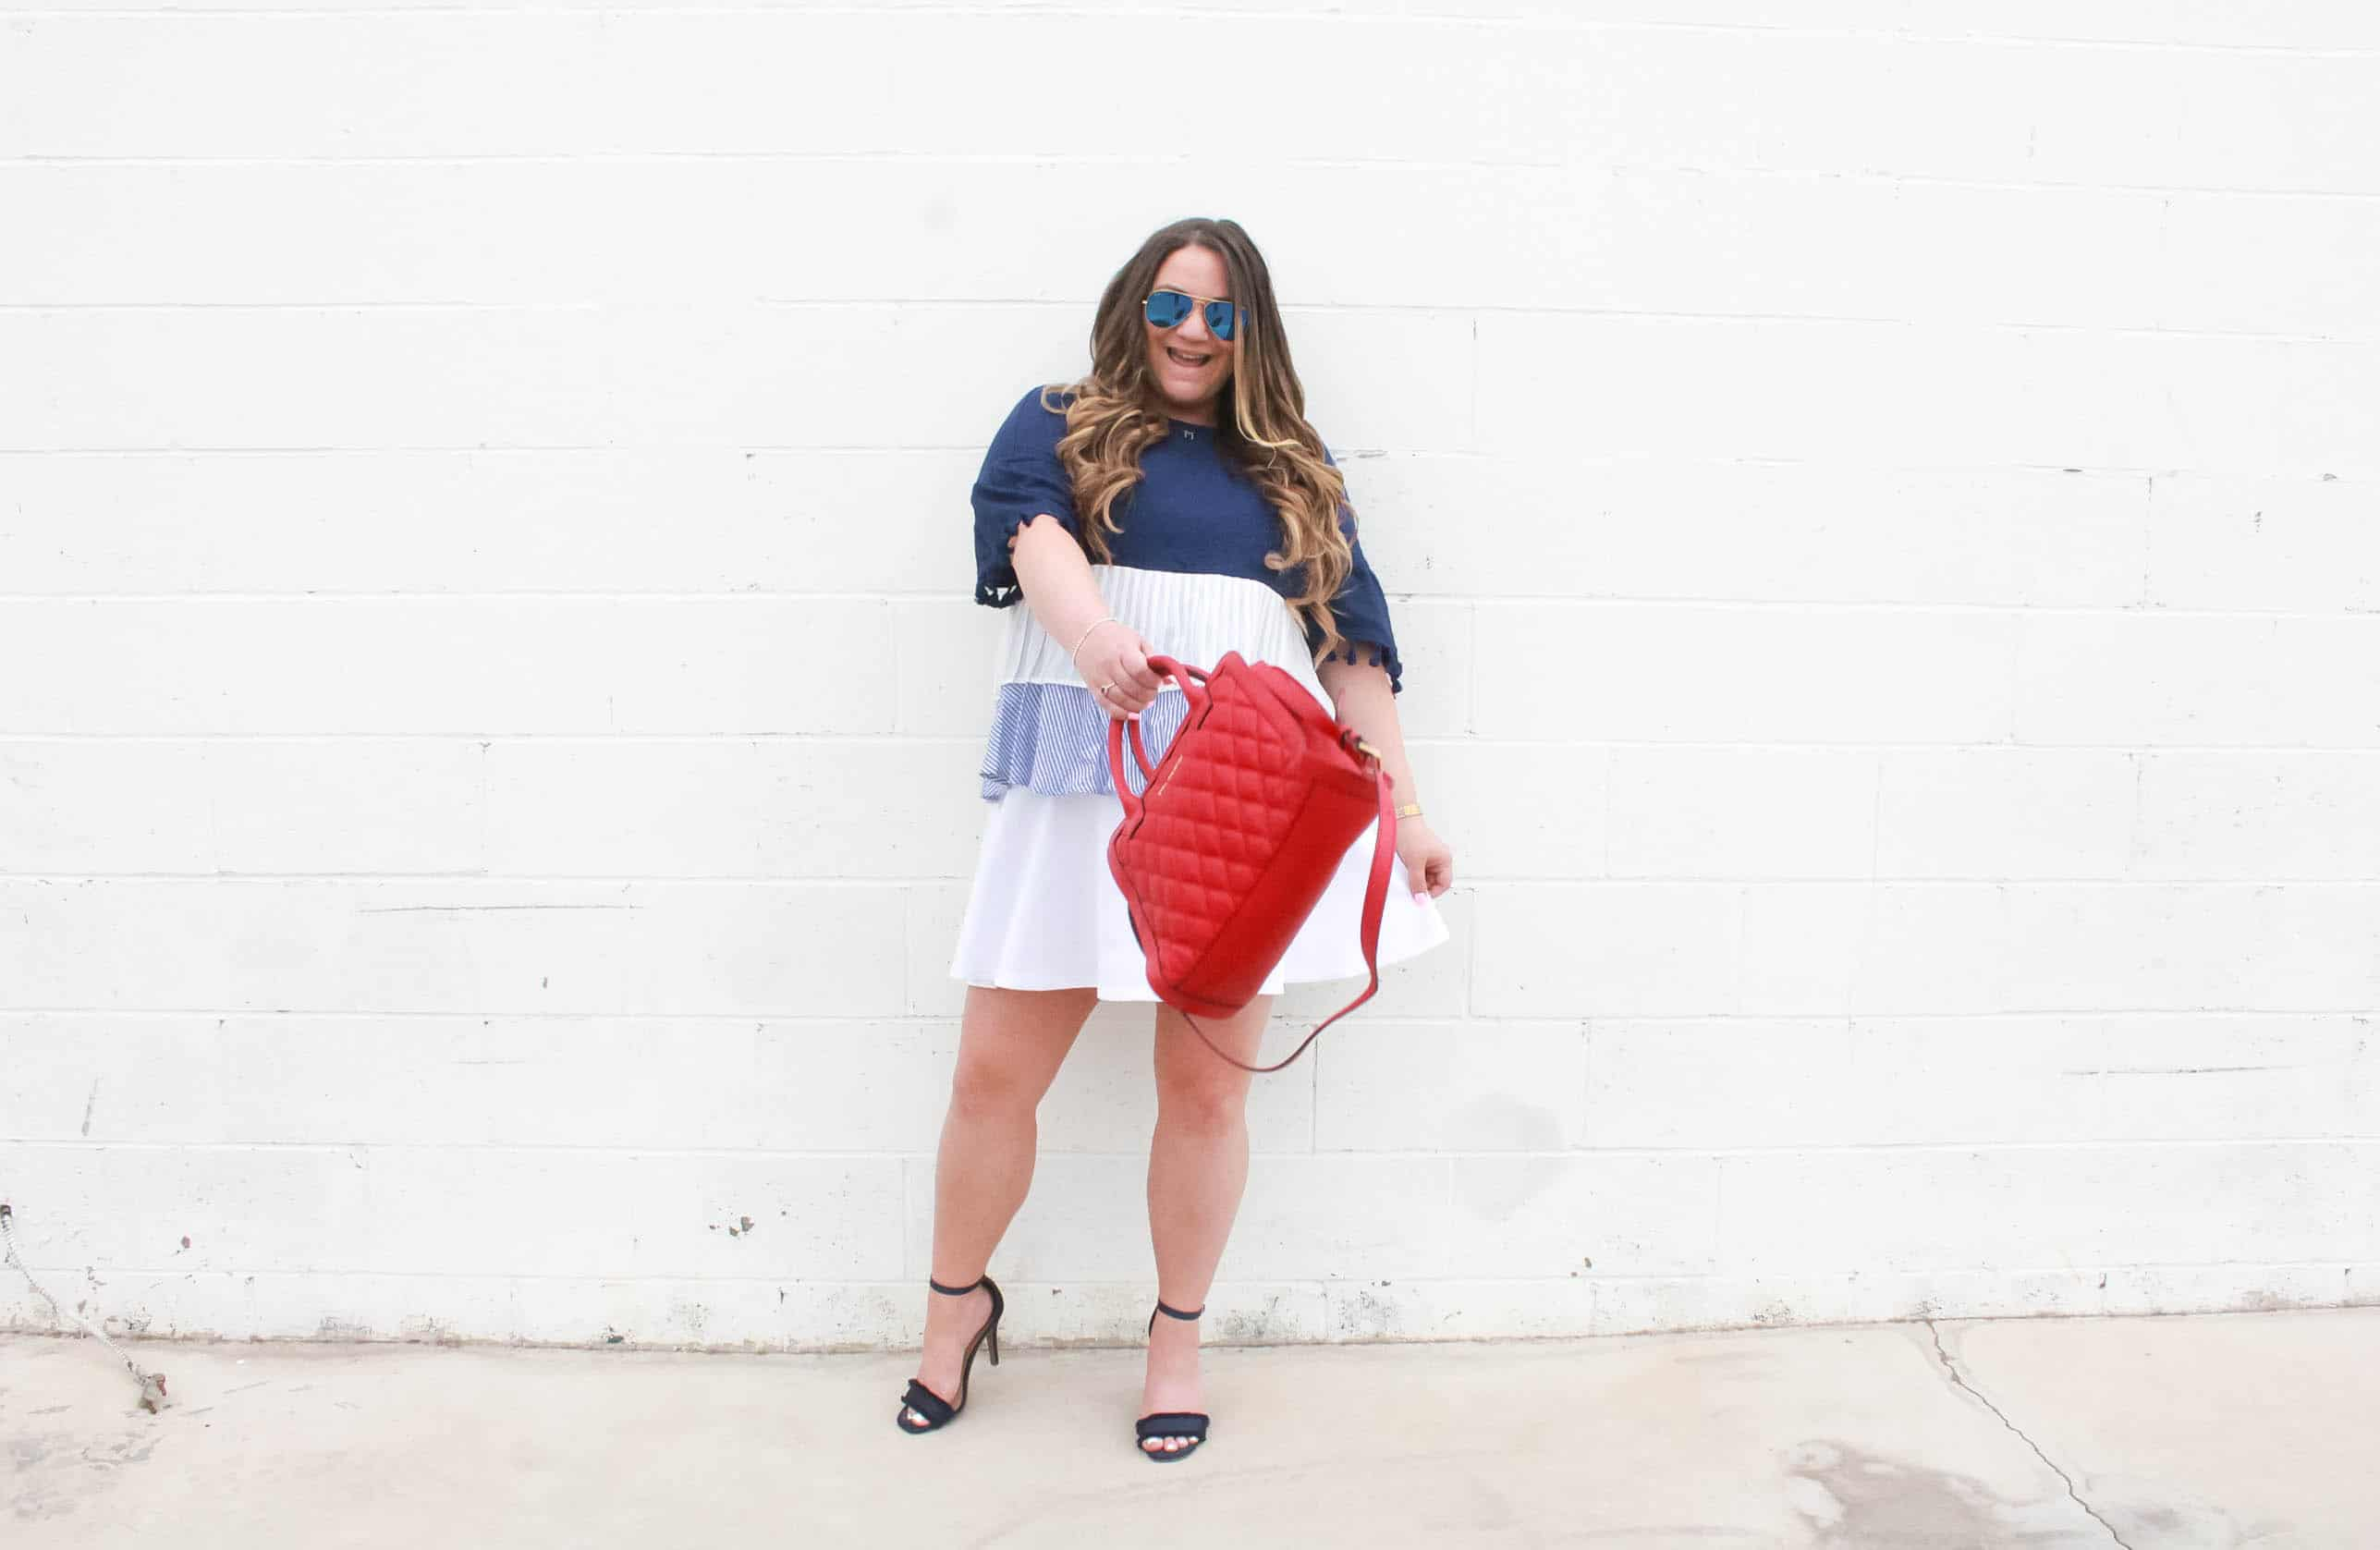 missyonmadison, missyonmadison blog, missyonmadison instagram, melissa tierney, red leather satchel, red satchel bag, kate spade satchel, vera bradley satchel, skies are blue, skies are blue clothing, skies are blue casey tassel sleeve contrast top, white skater skirt, white skirt, blue ankle strap heels, blue ankle strap heeled sandals, raybans, 4th of july look, 4th of july style, red white and blue, red white and blue outfit, july 4th look, bloglovin, blogger style, fashion blogger, style blog, style blogger,